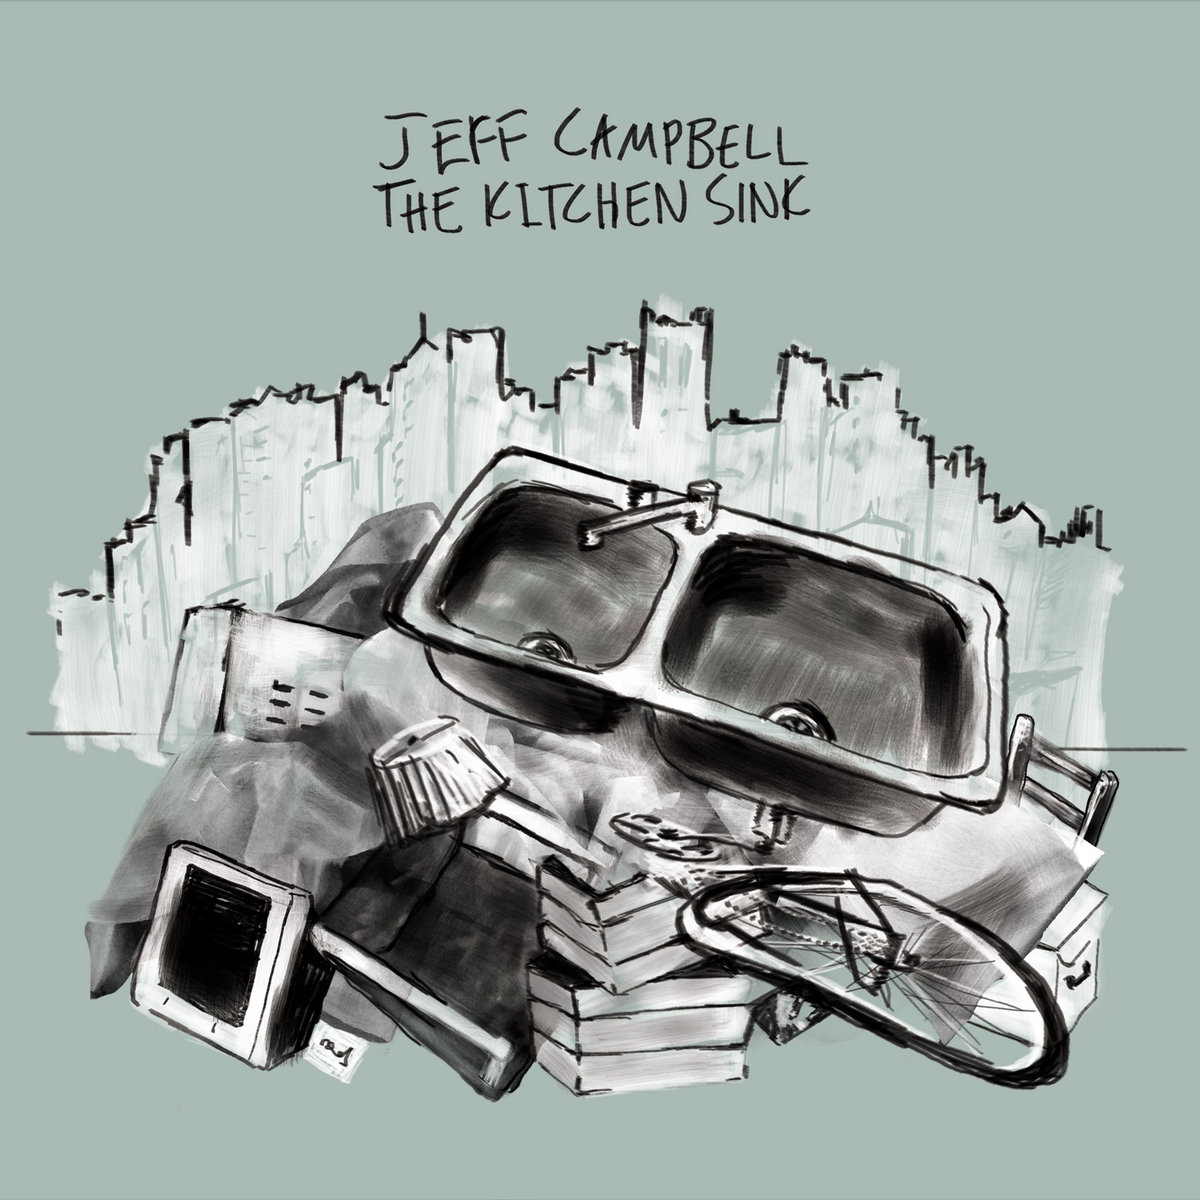 Kitchen Sink Lyrics The Kitchen Sink  Jeff Campbell